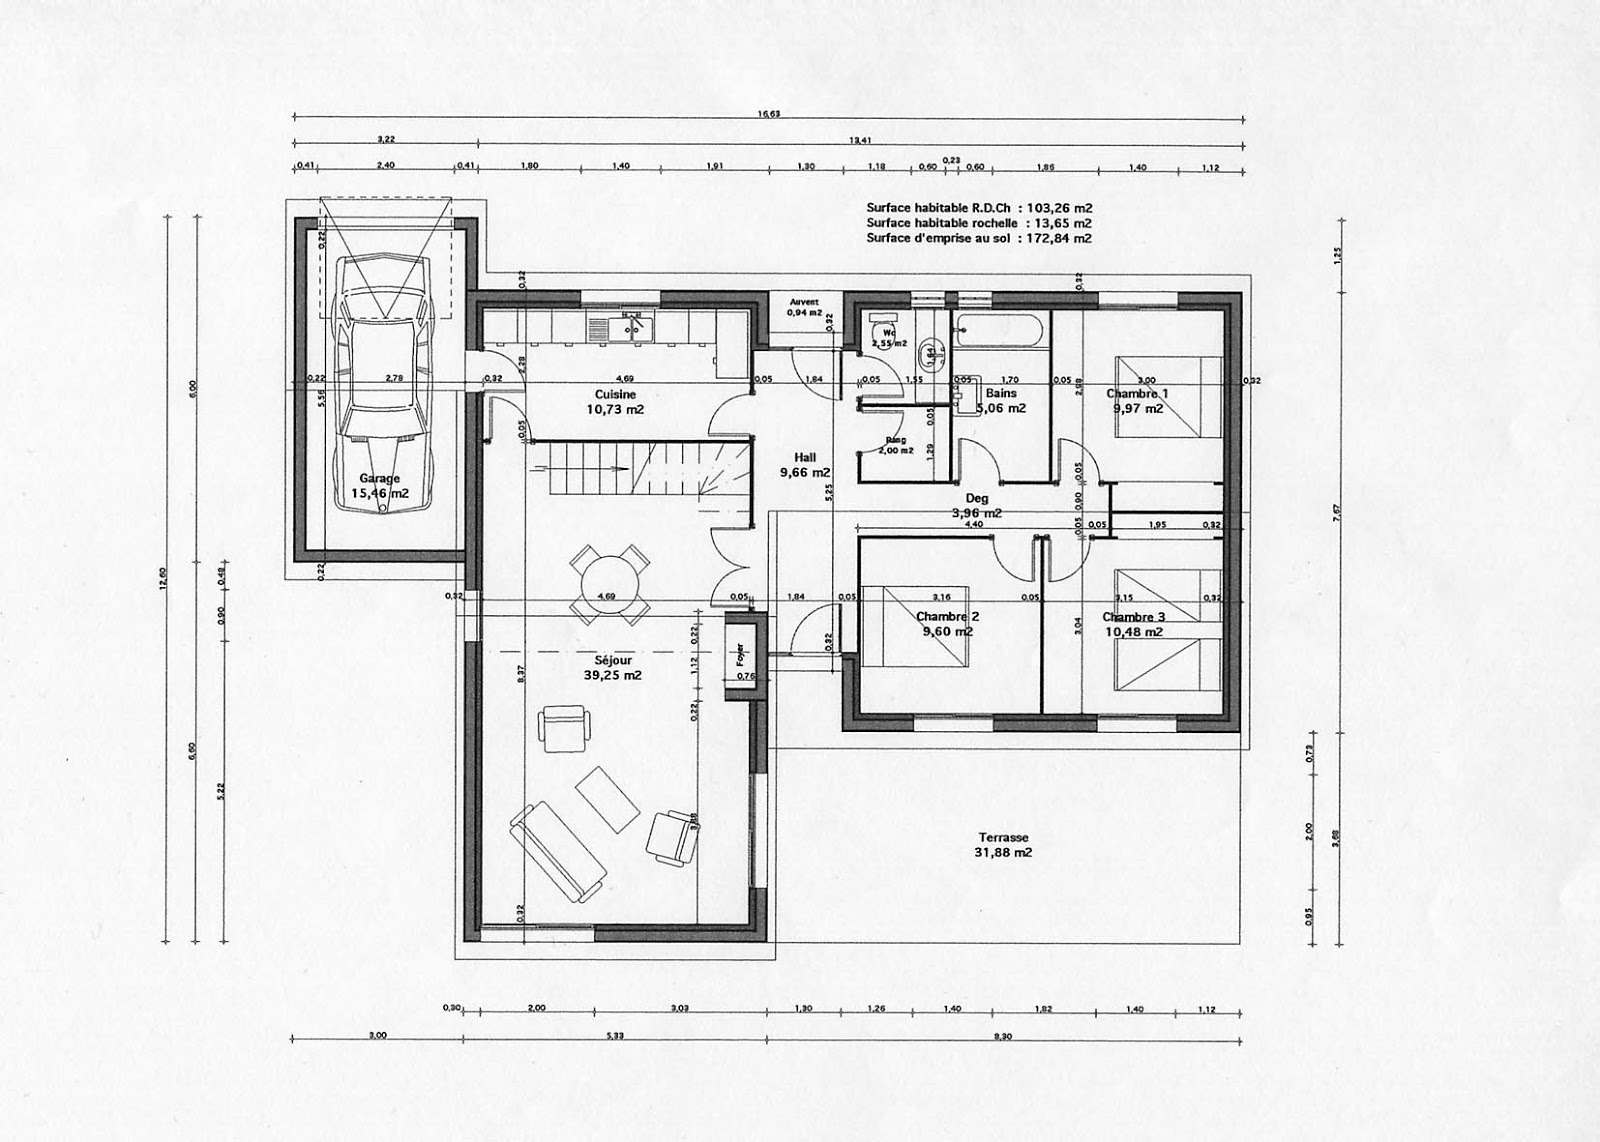 Plans de maison 2 book batiment architecture for Architecture et design maison